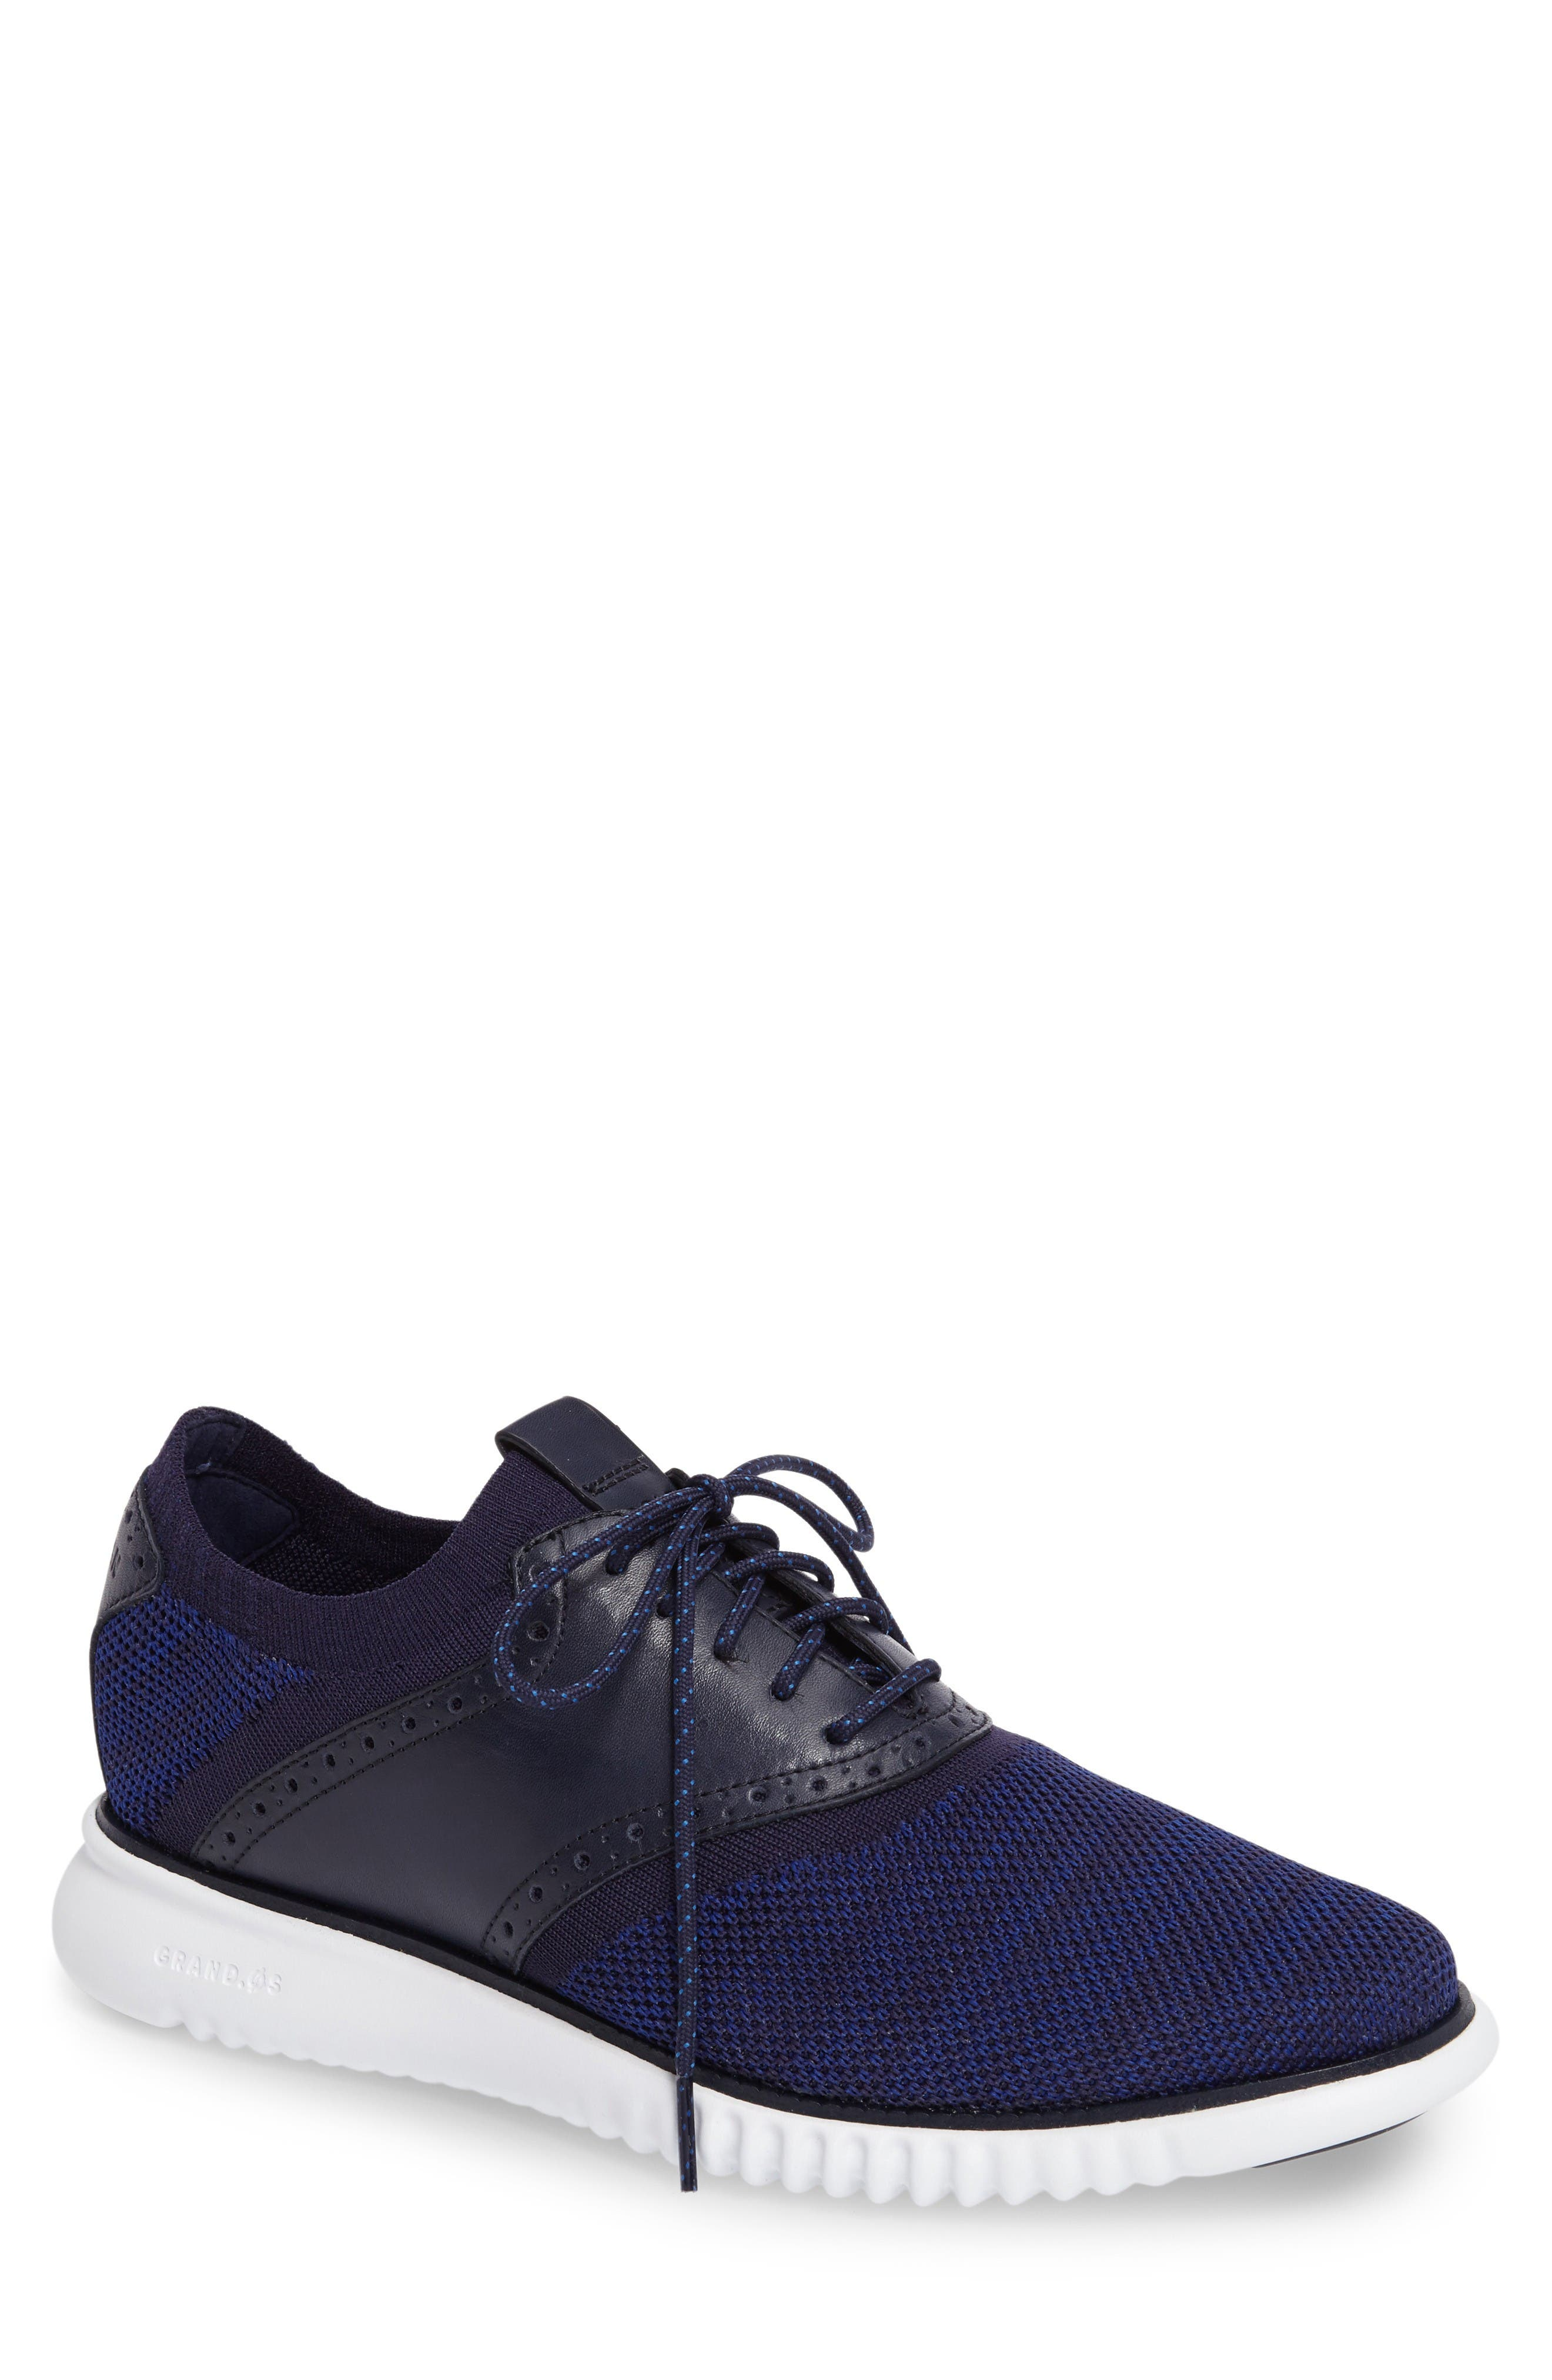 COLE HAAN 2.0 Grand Saddle Sneaker